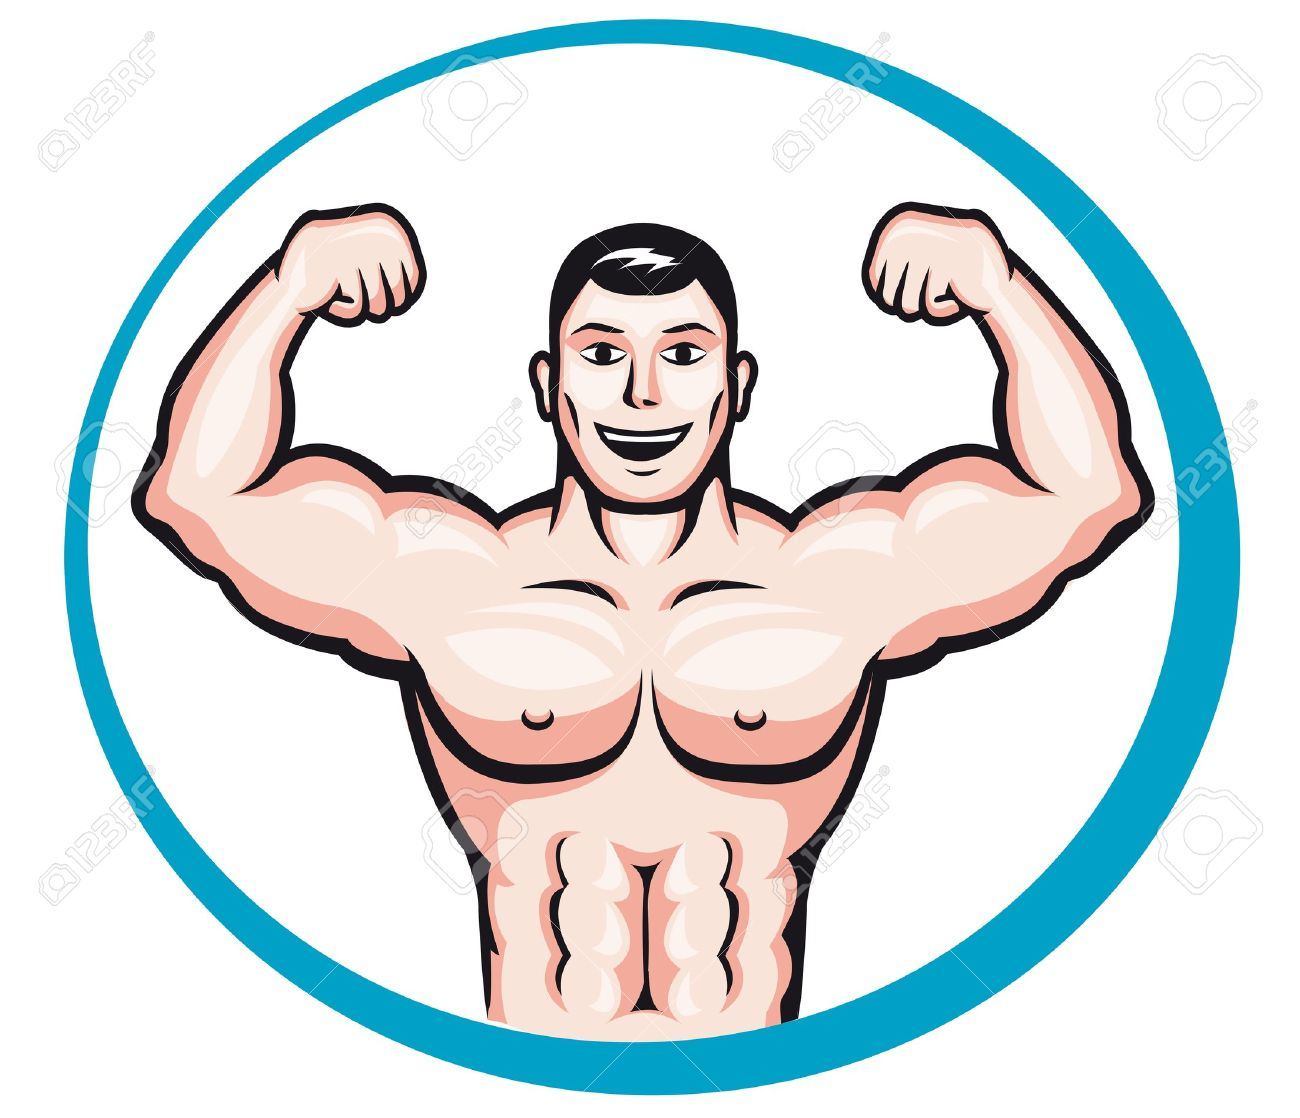 Healthy Man Clipart 5 Clipart Station